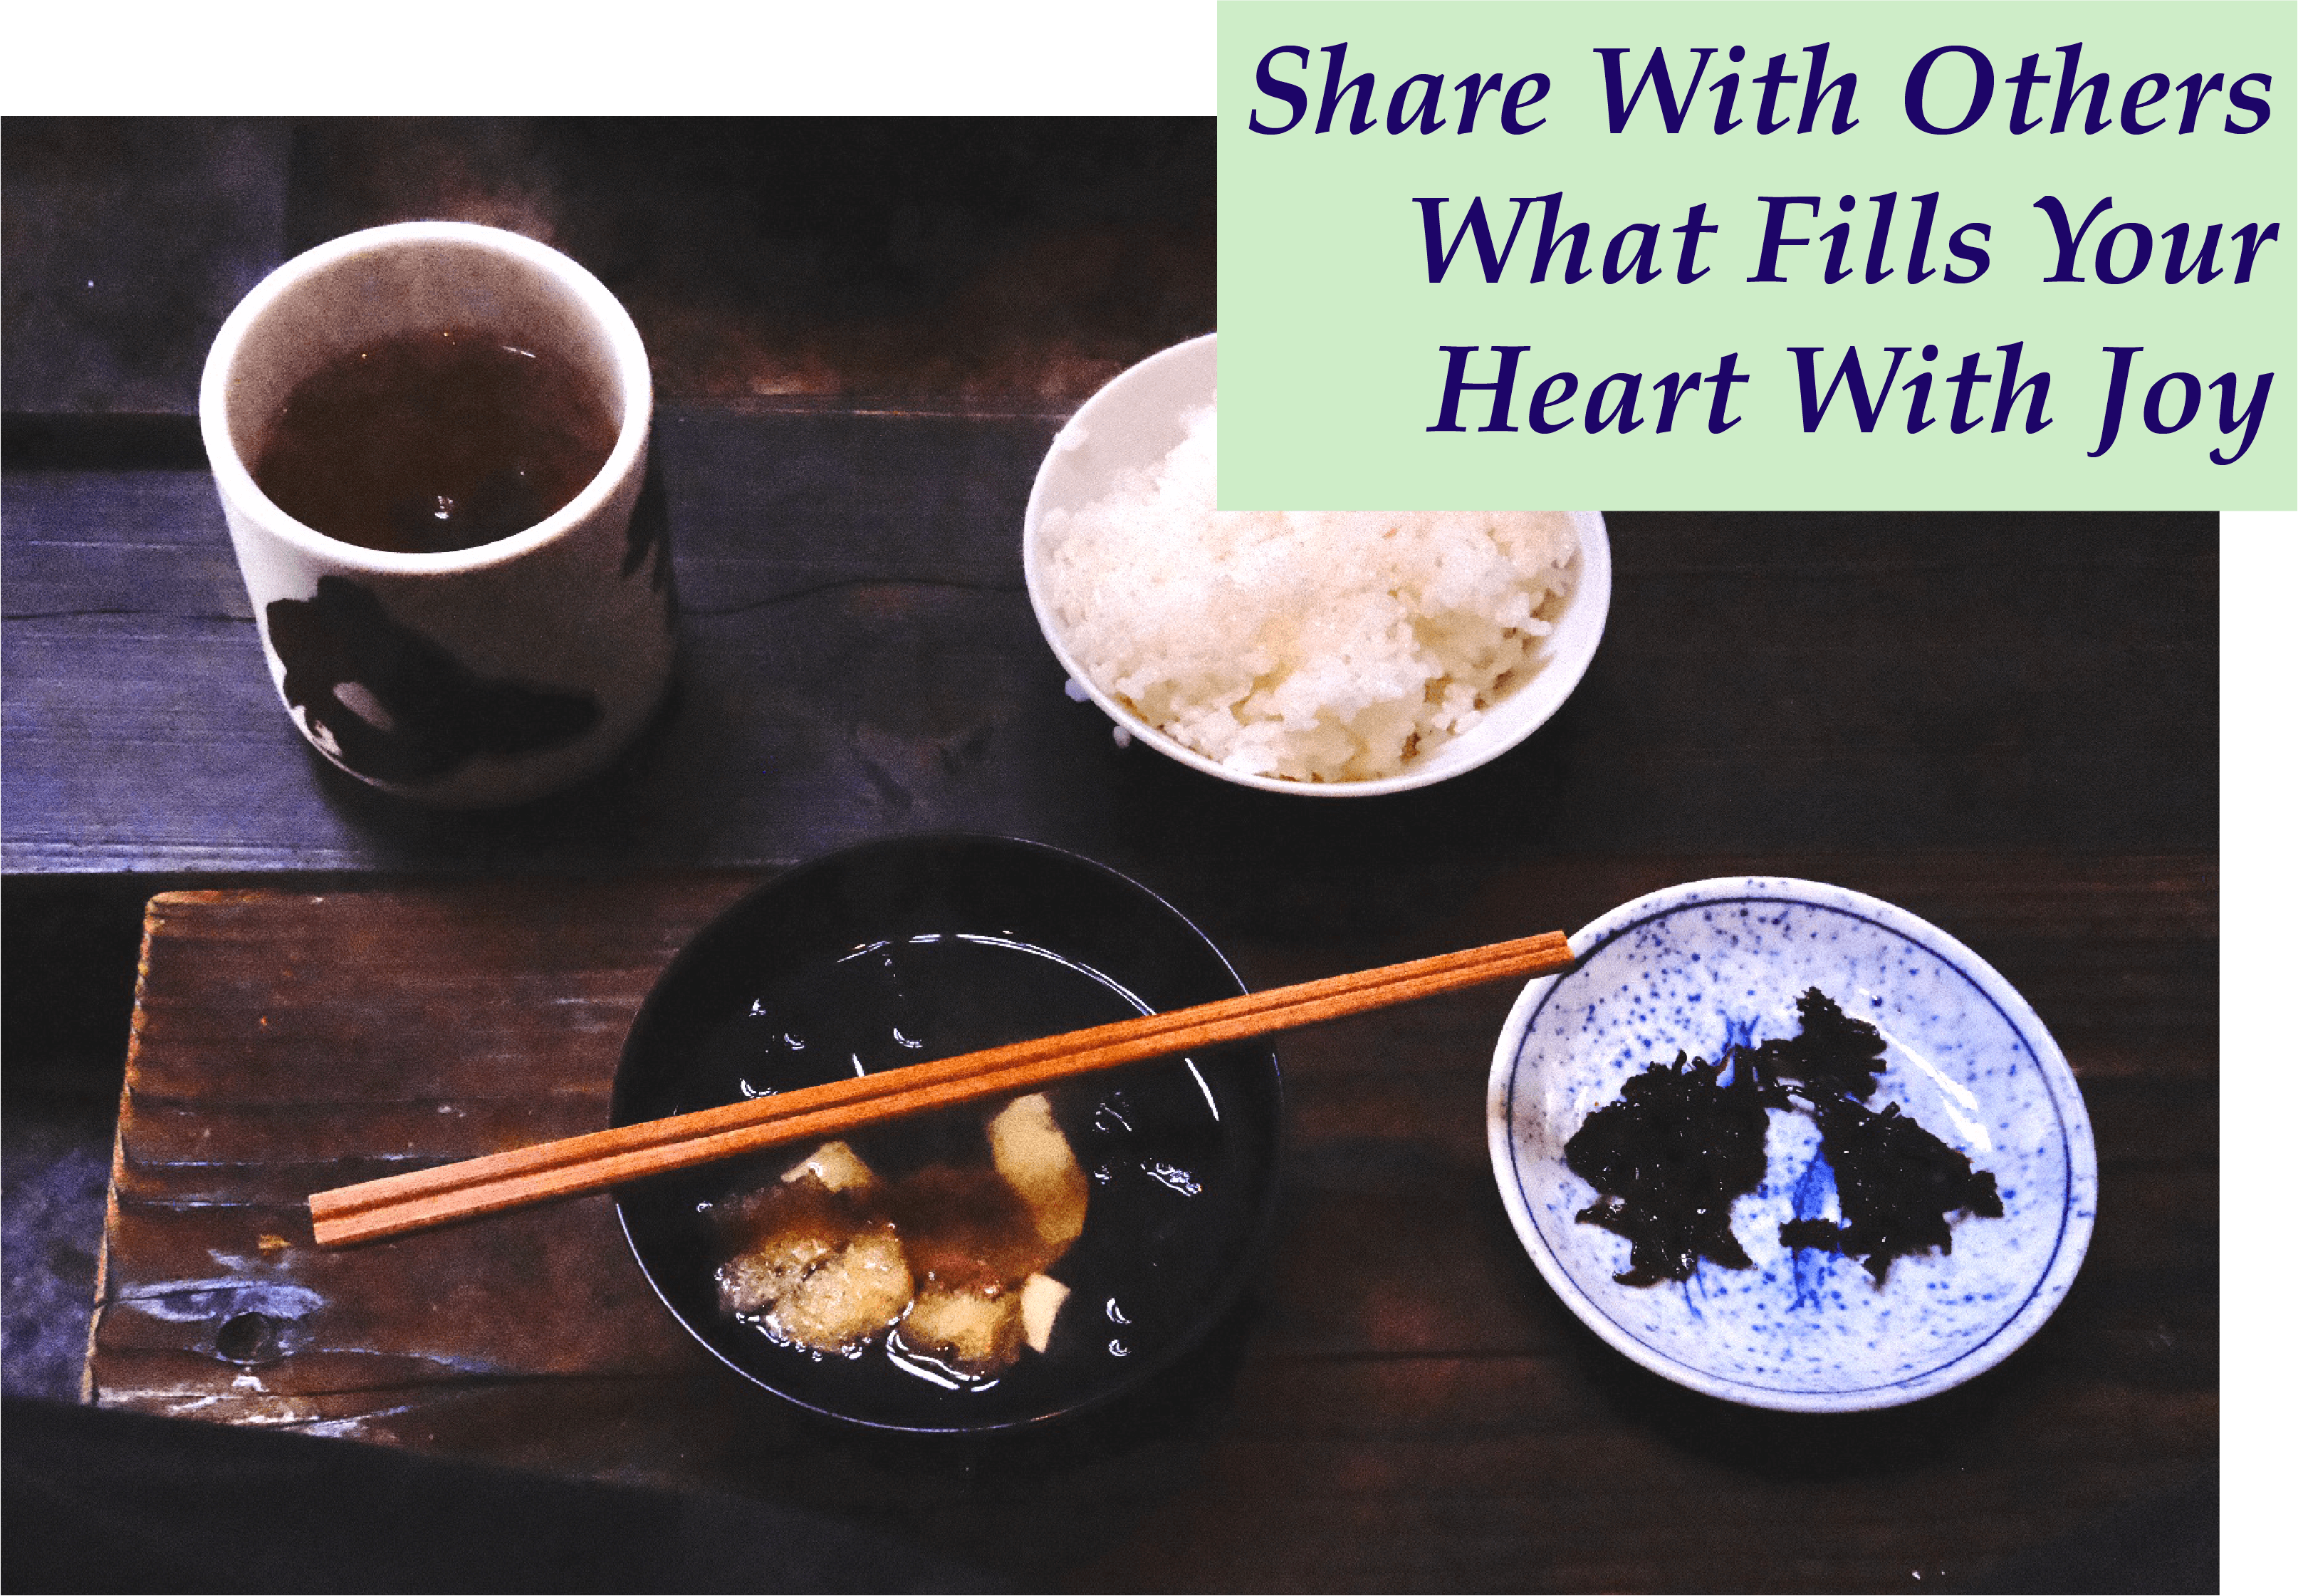 share with others what fills your heart with joy